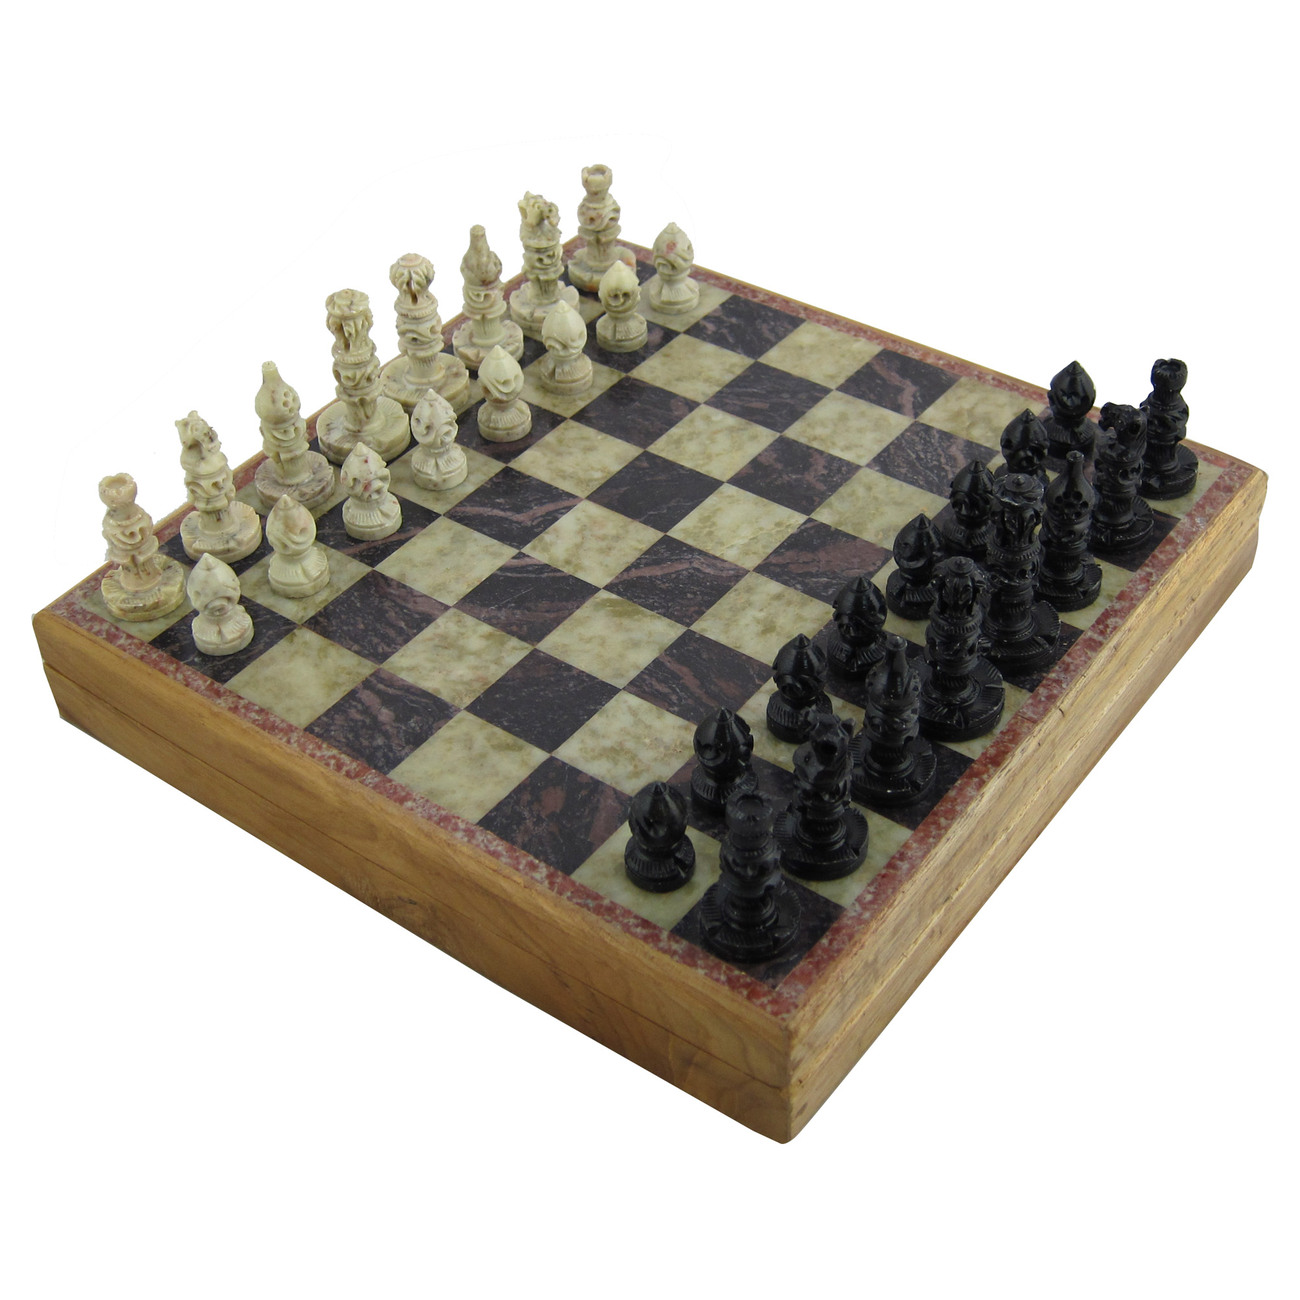 Rajasthan Stone Art Unique Chess Sets And Board Chess